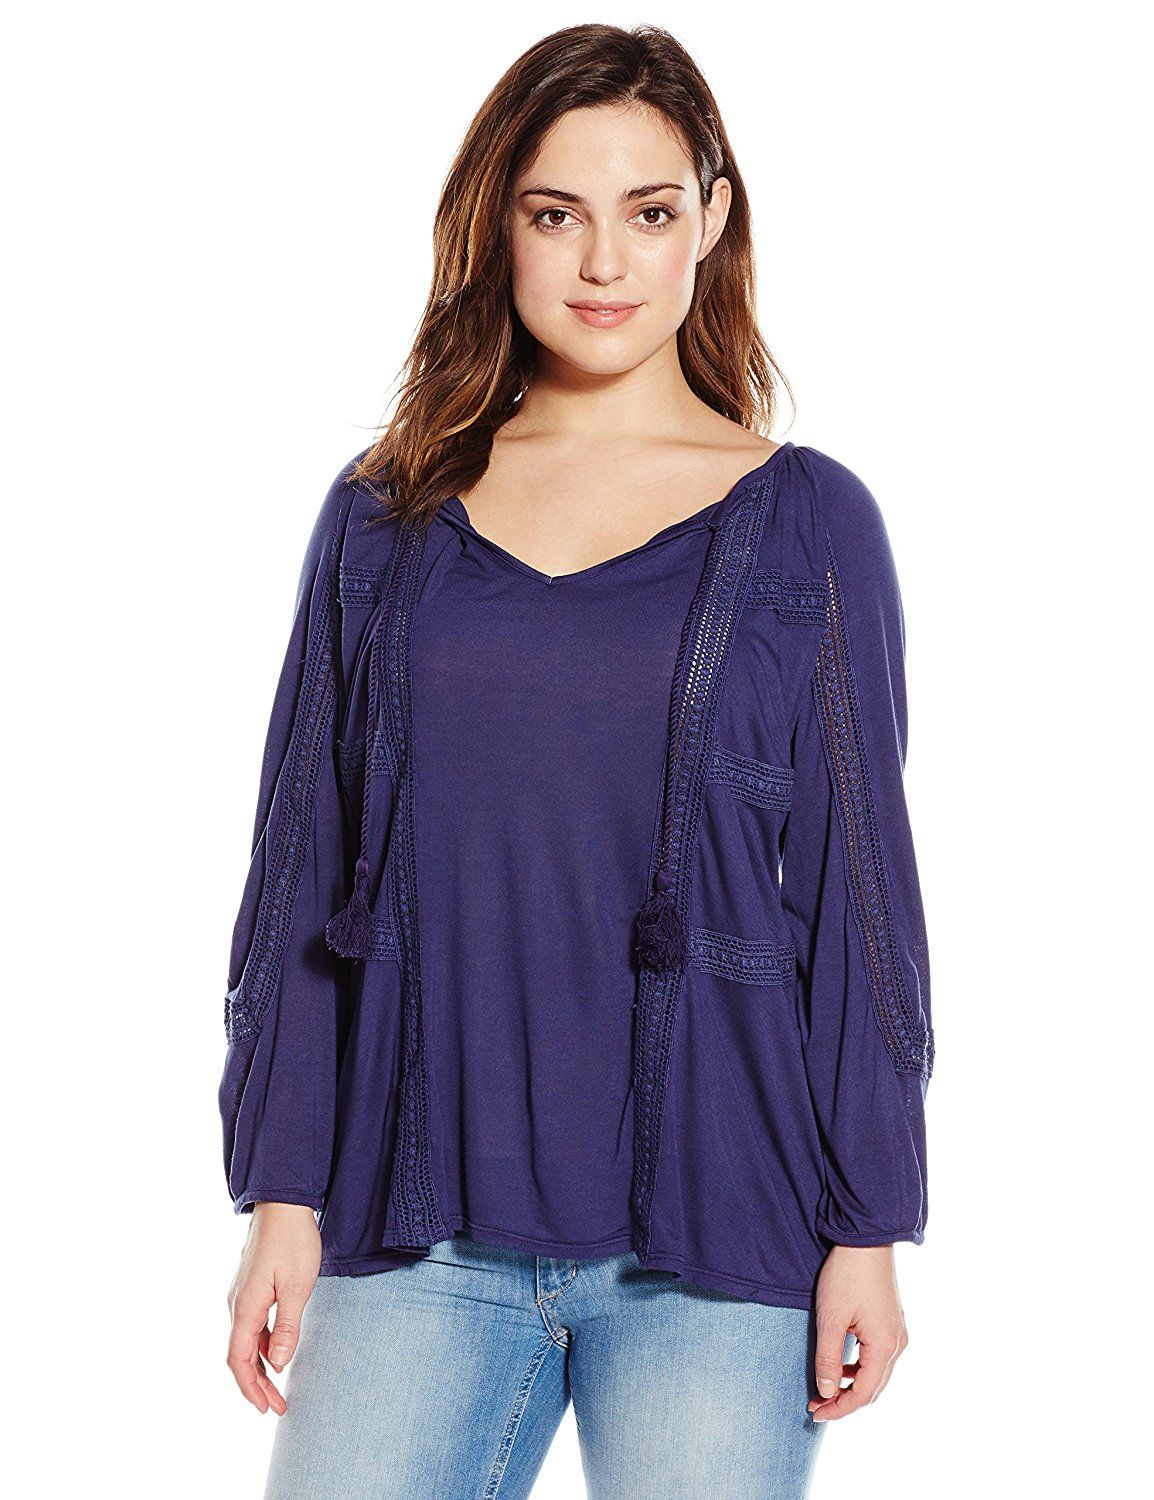 eb21c939b5d4d Lucky Brand Women s Plus-Size Lace Mixed Peasant Top   Review more details  here   Plus size shirts